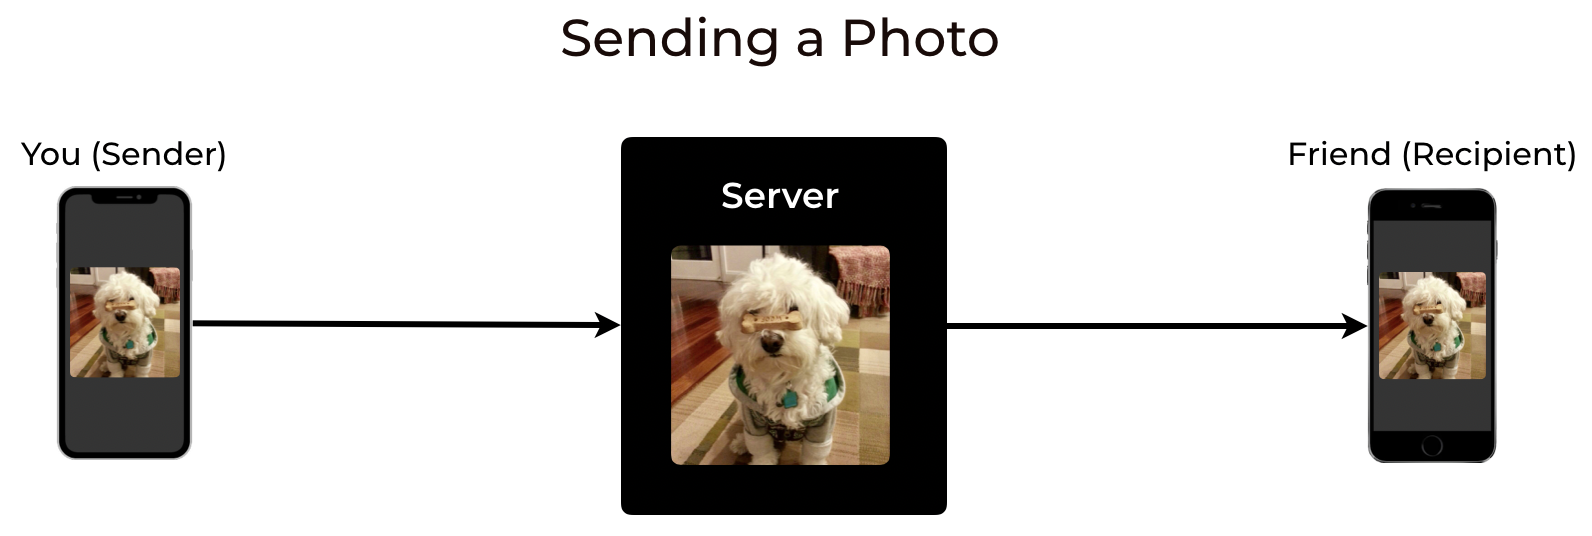 A photo is sent from a Sender device to a black box server, then to a Recipient device.